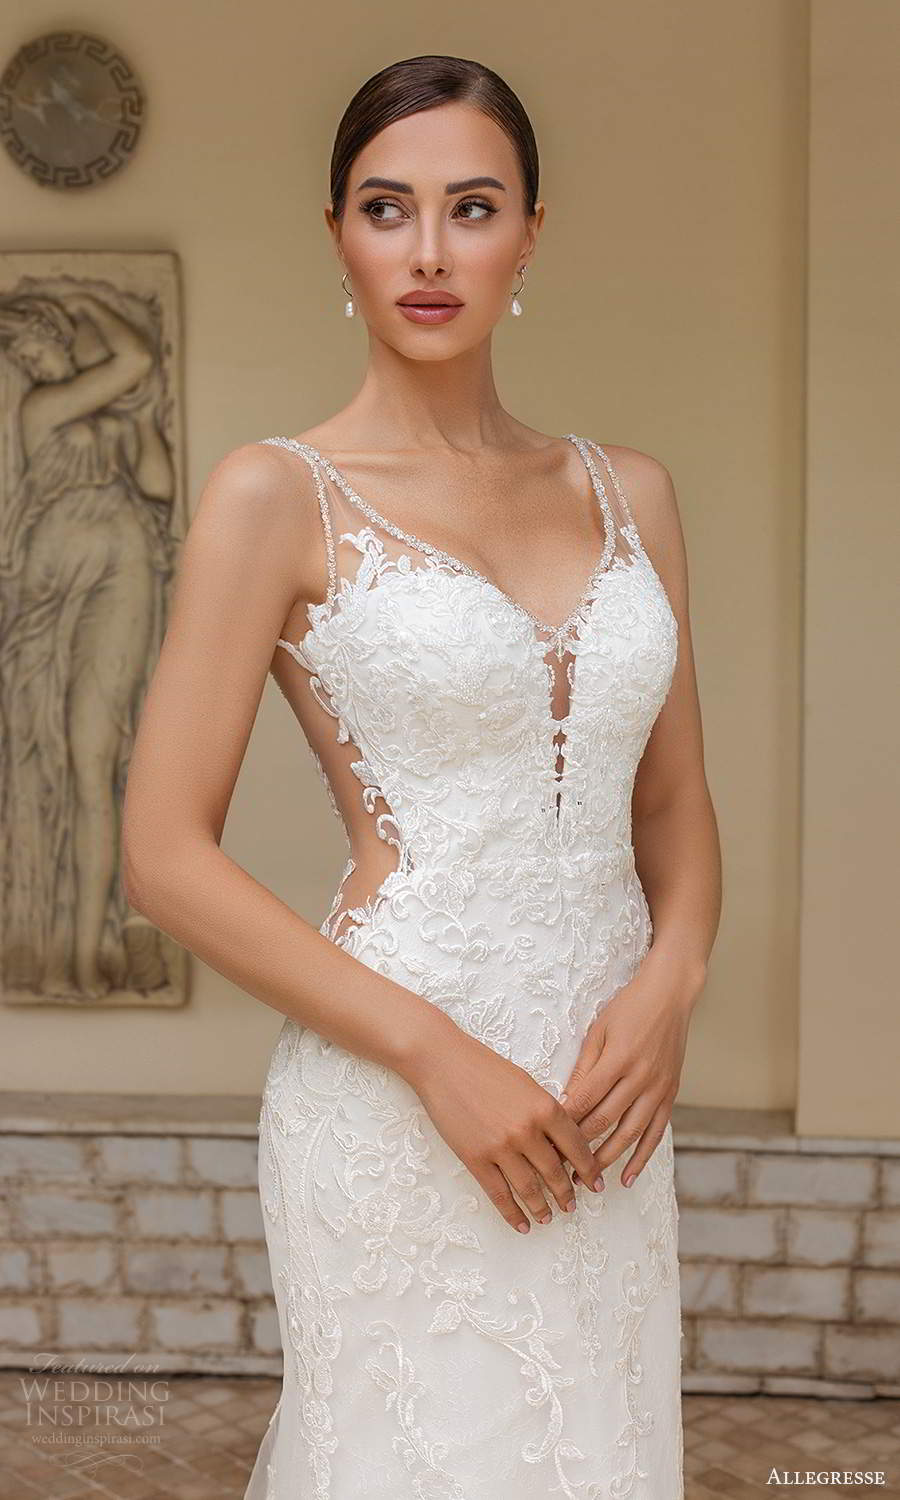 allegresse 2021 bridal sleeveless straps plunging sweetheart neckline fully embellished lace a line wedding dress chapel train illusion back (16) zv